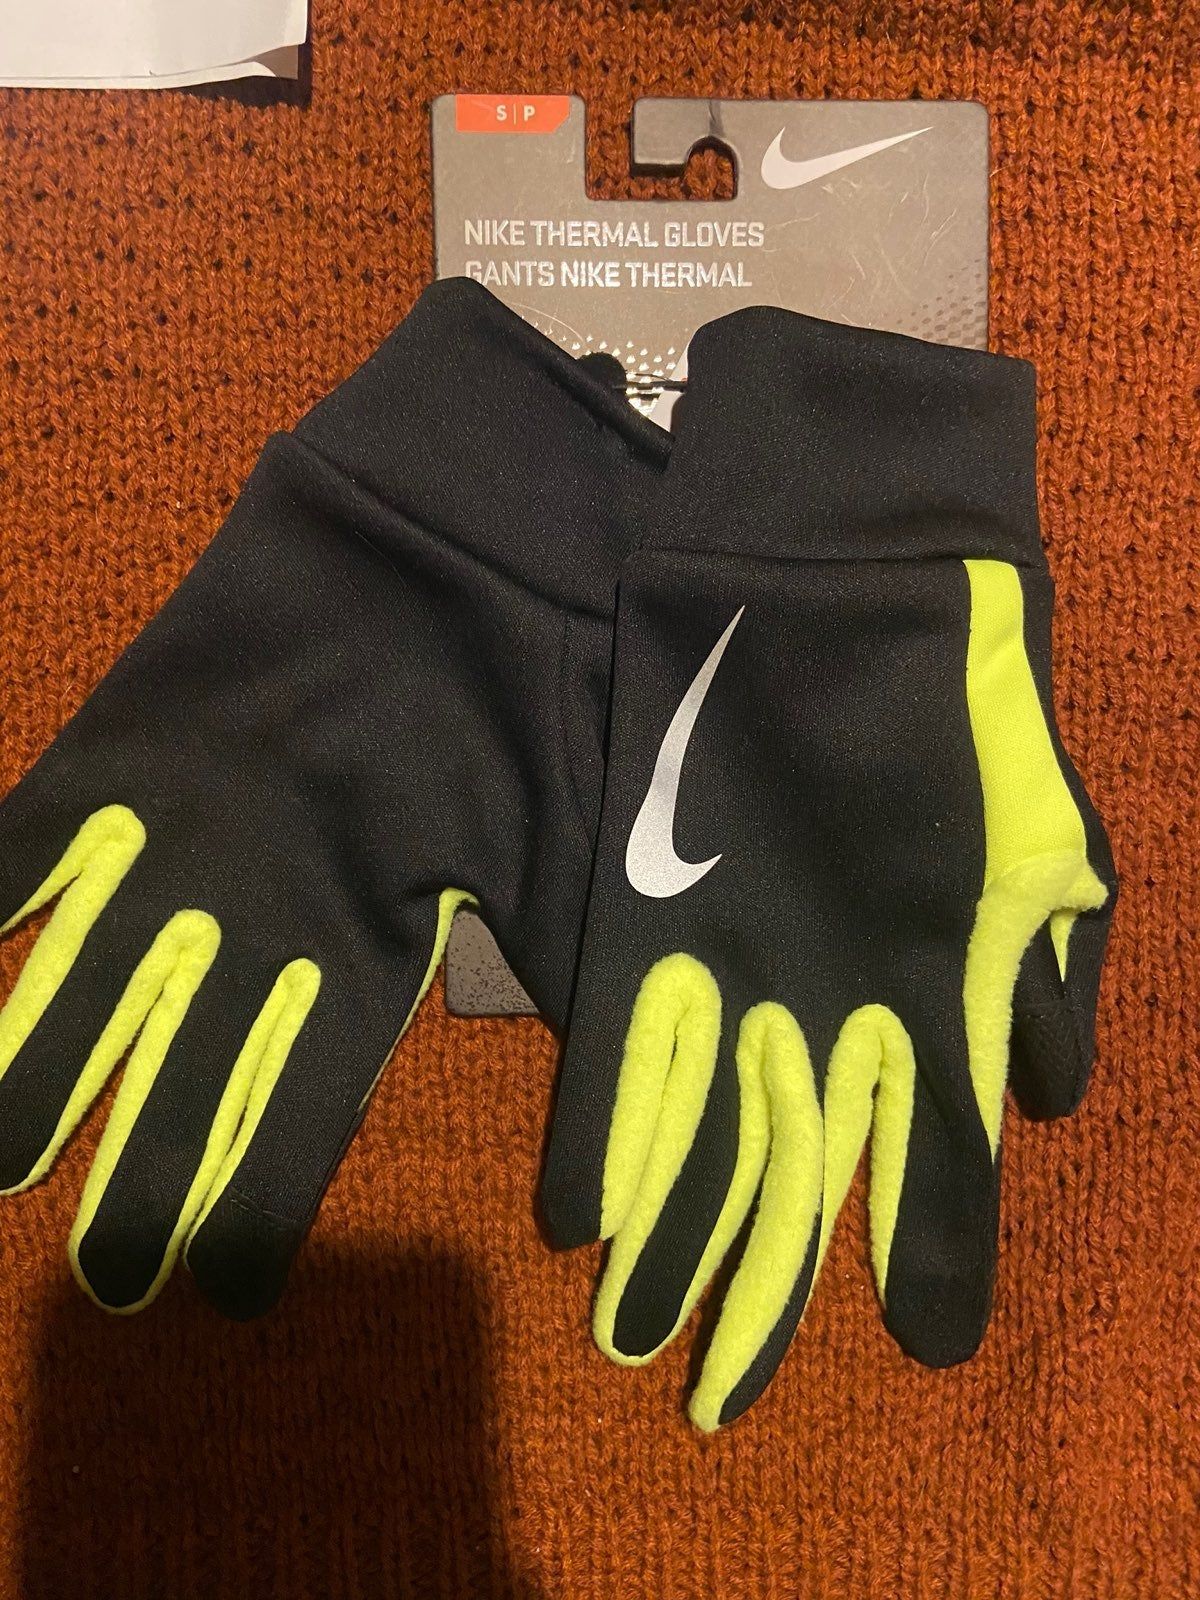 Nike Thermal Gloves Conductive Fingers